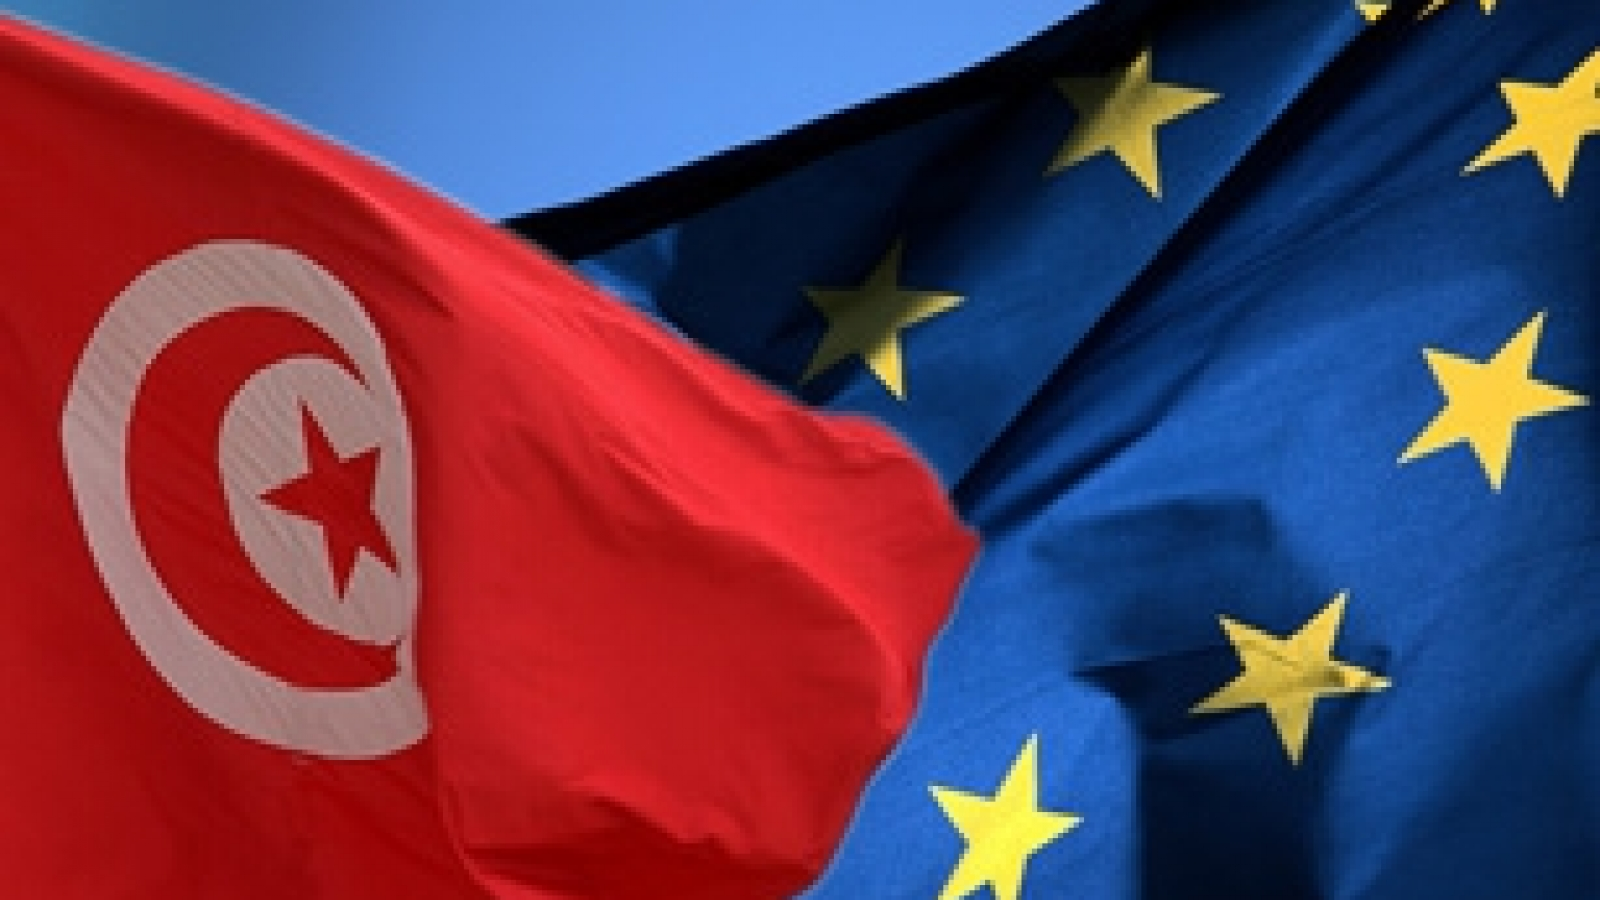 EU-Tunisia relations: towards a strengthening of the Privileged Partnership